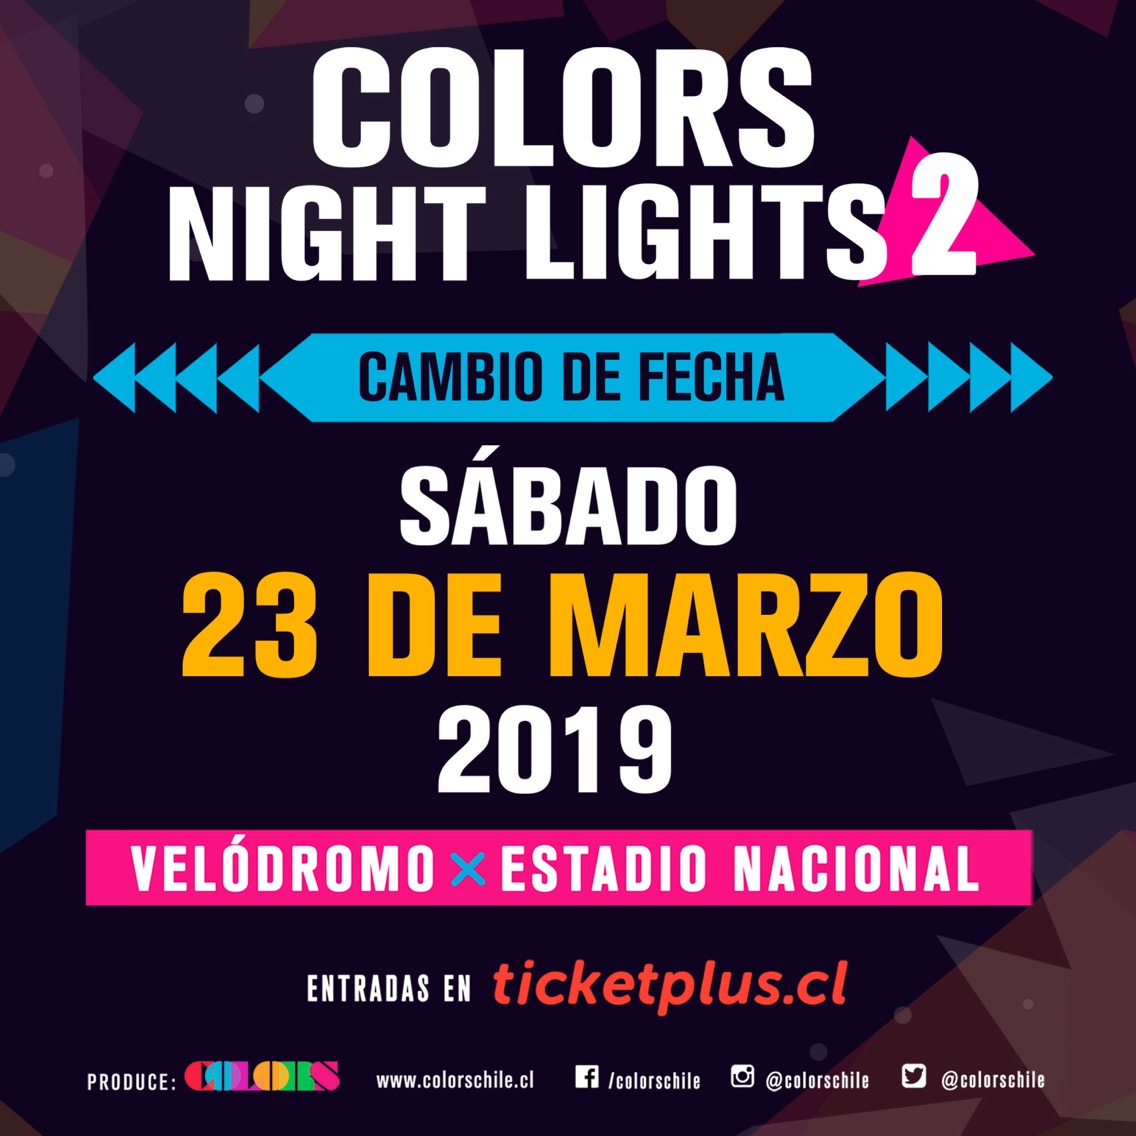 colorsnightlights2